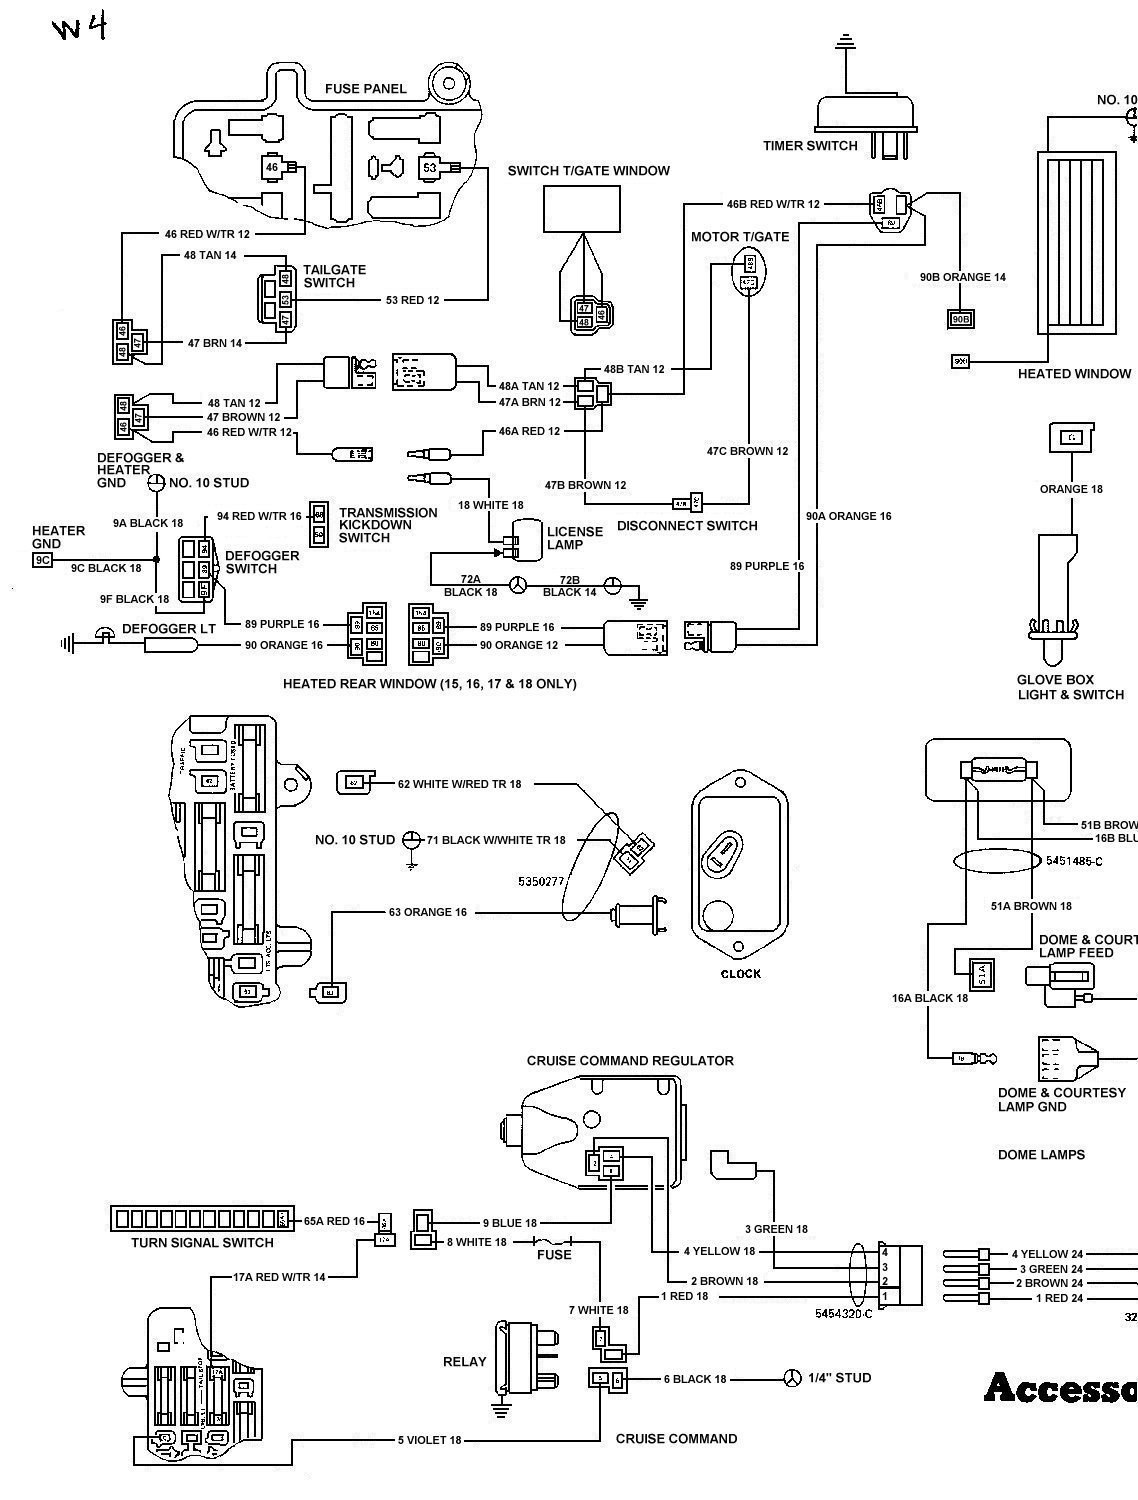 Jeep J10 Wiring Archive Of Automotive Diagram Rb25 Plug Tom Oljeep Collins Fsj Page Rh Com 1978 79